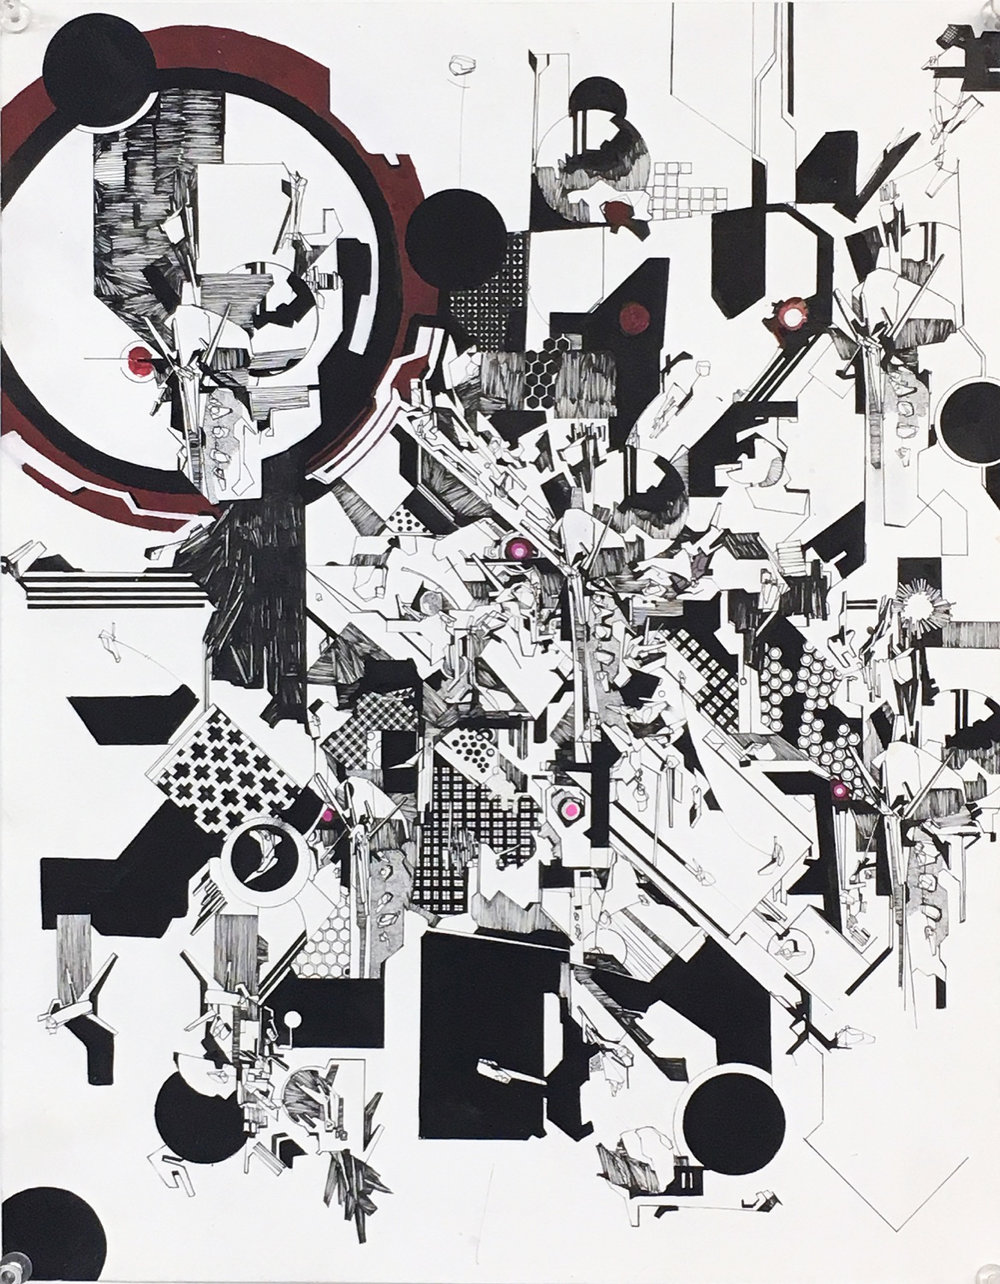 NICK ADAMS 5.4 Really Really Over-Eager Pattern Recognition  ink on paper 11 X 17 inches